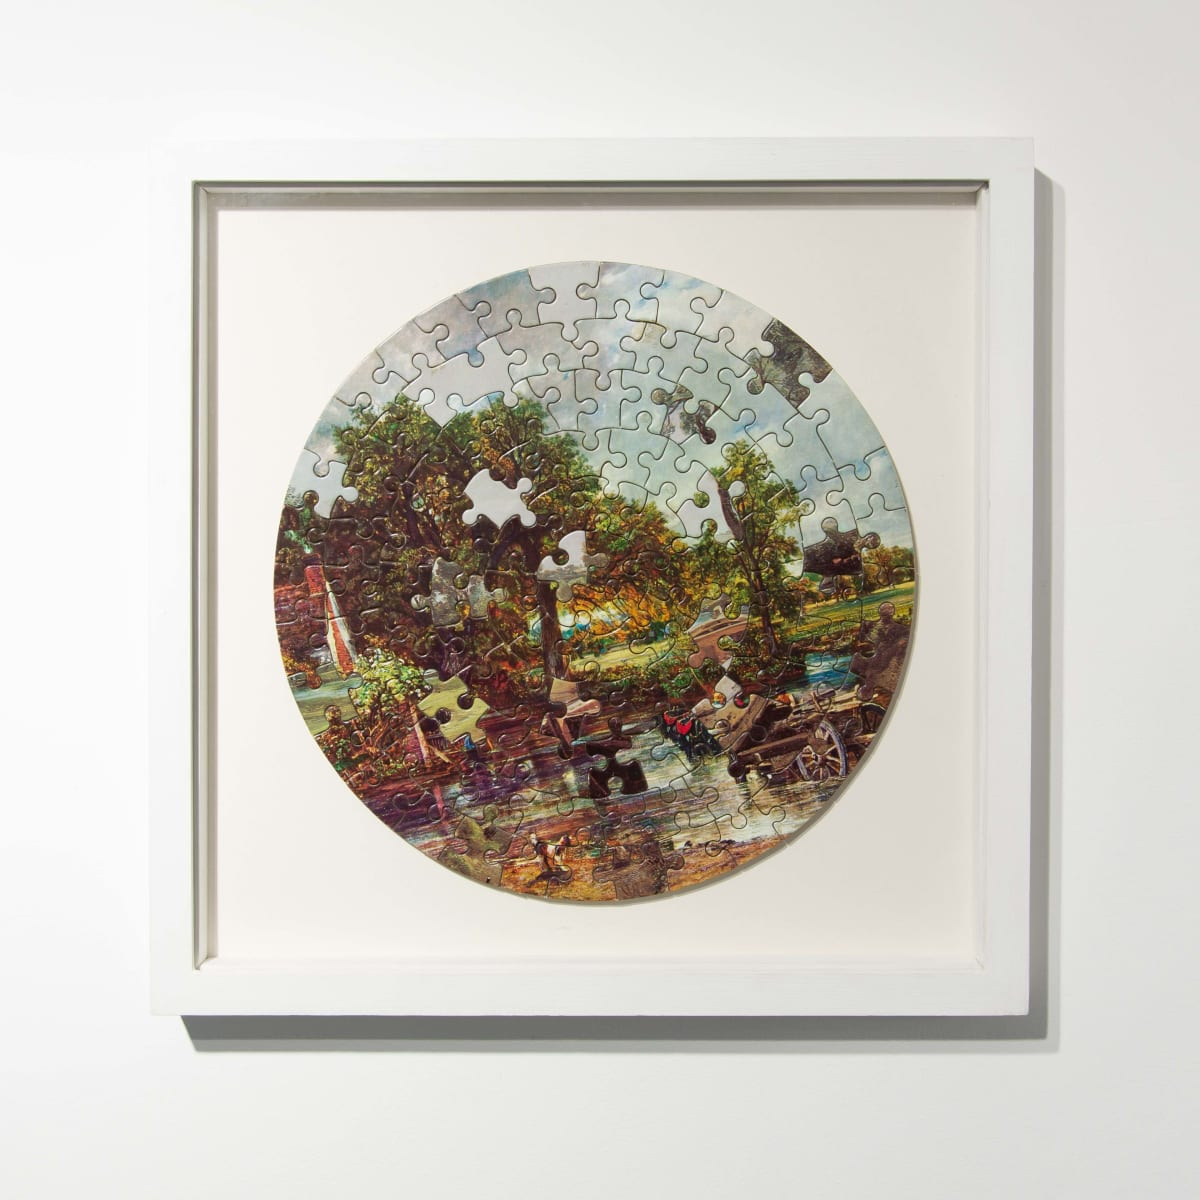 Darren Coffield Constable [I], 2014 Lithograph on die-cut board 22.5 cm (d) 35.5 x 35.5 cm (framed) Edition of 2